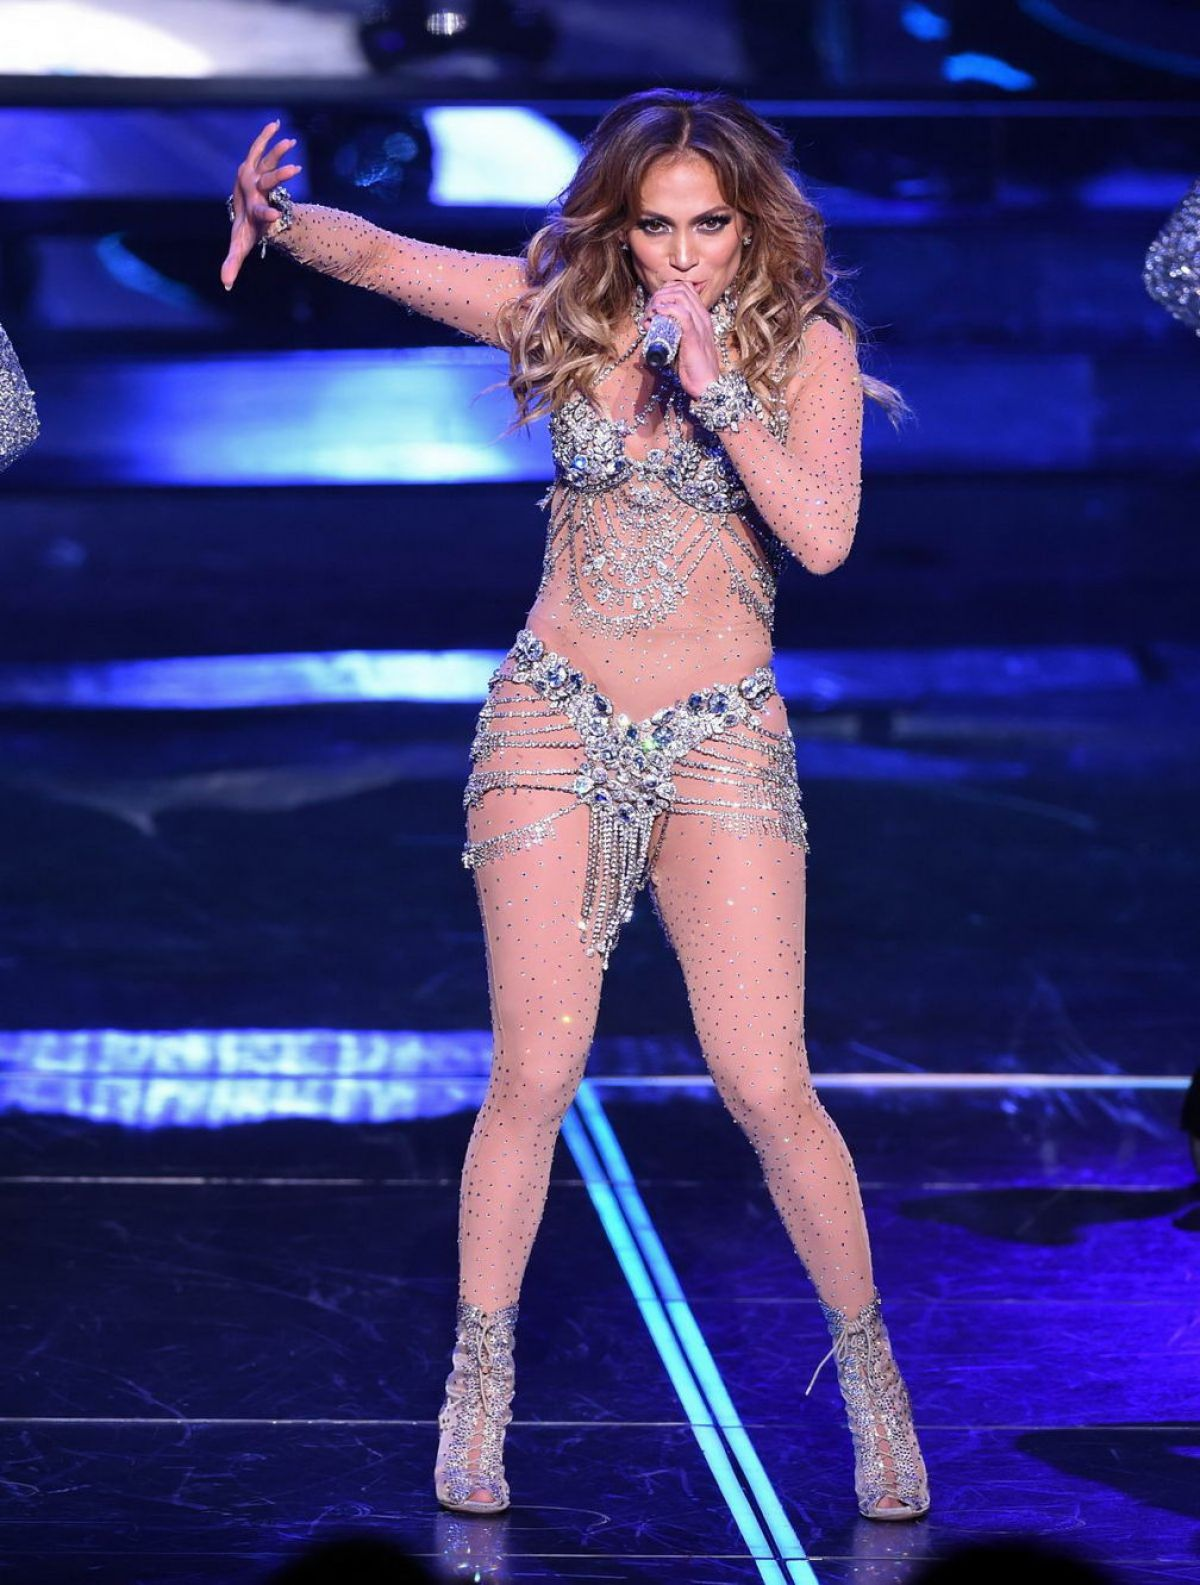 Jennifer Lopez On Stage At Opening Night Of Her All I Have